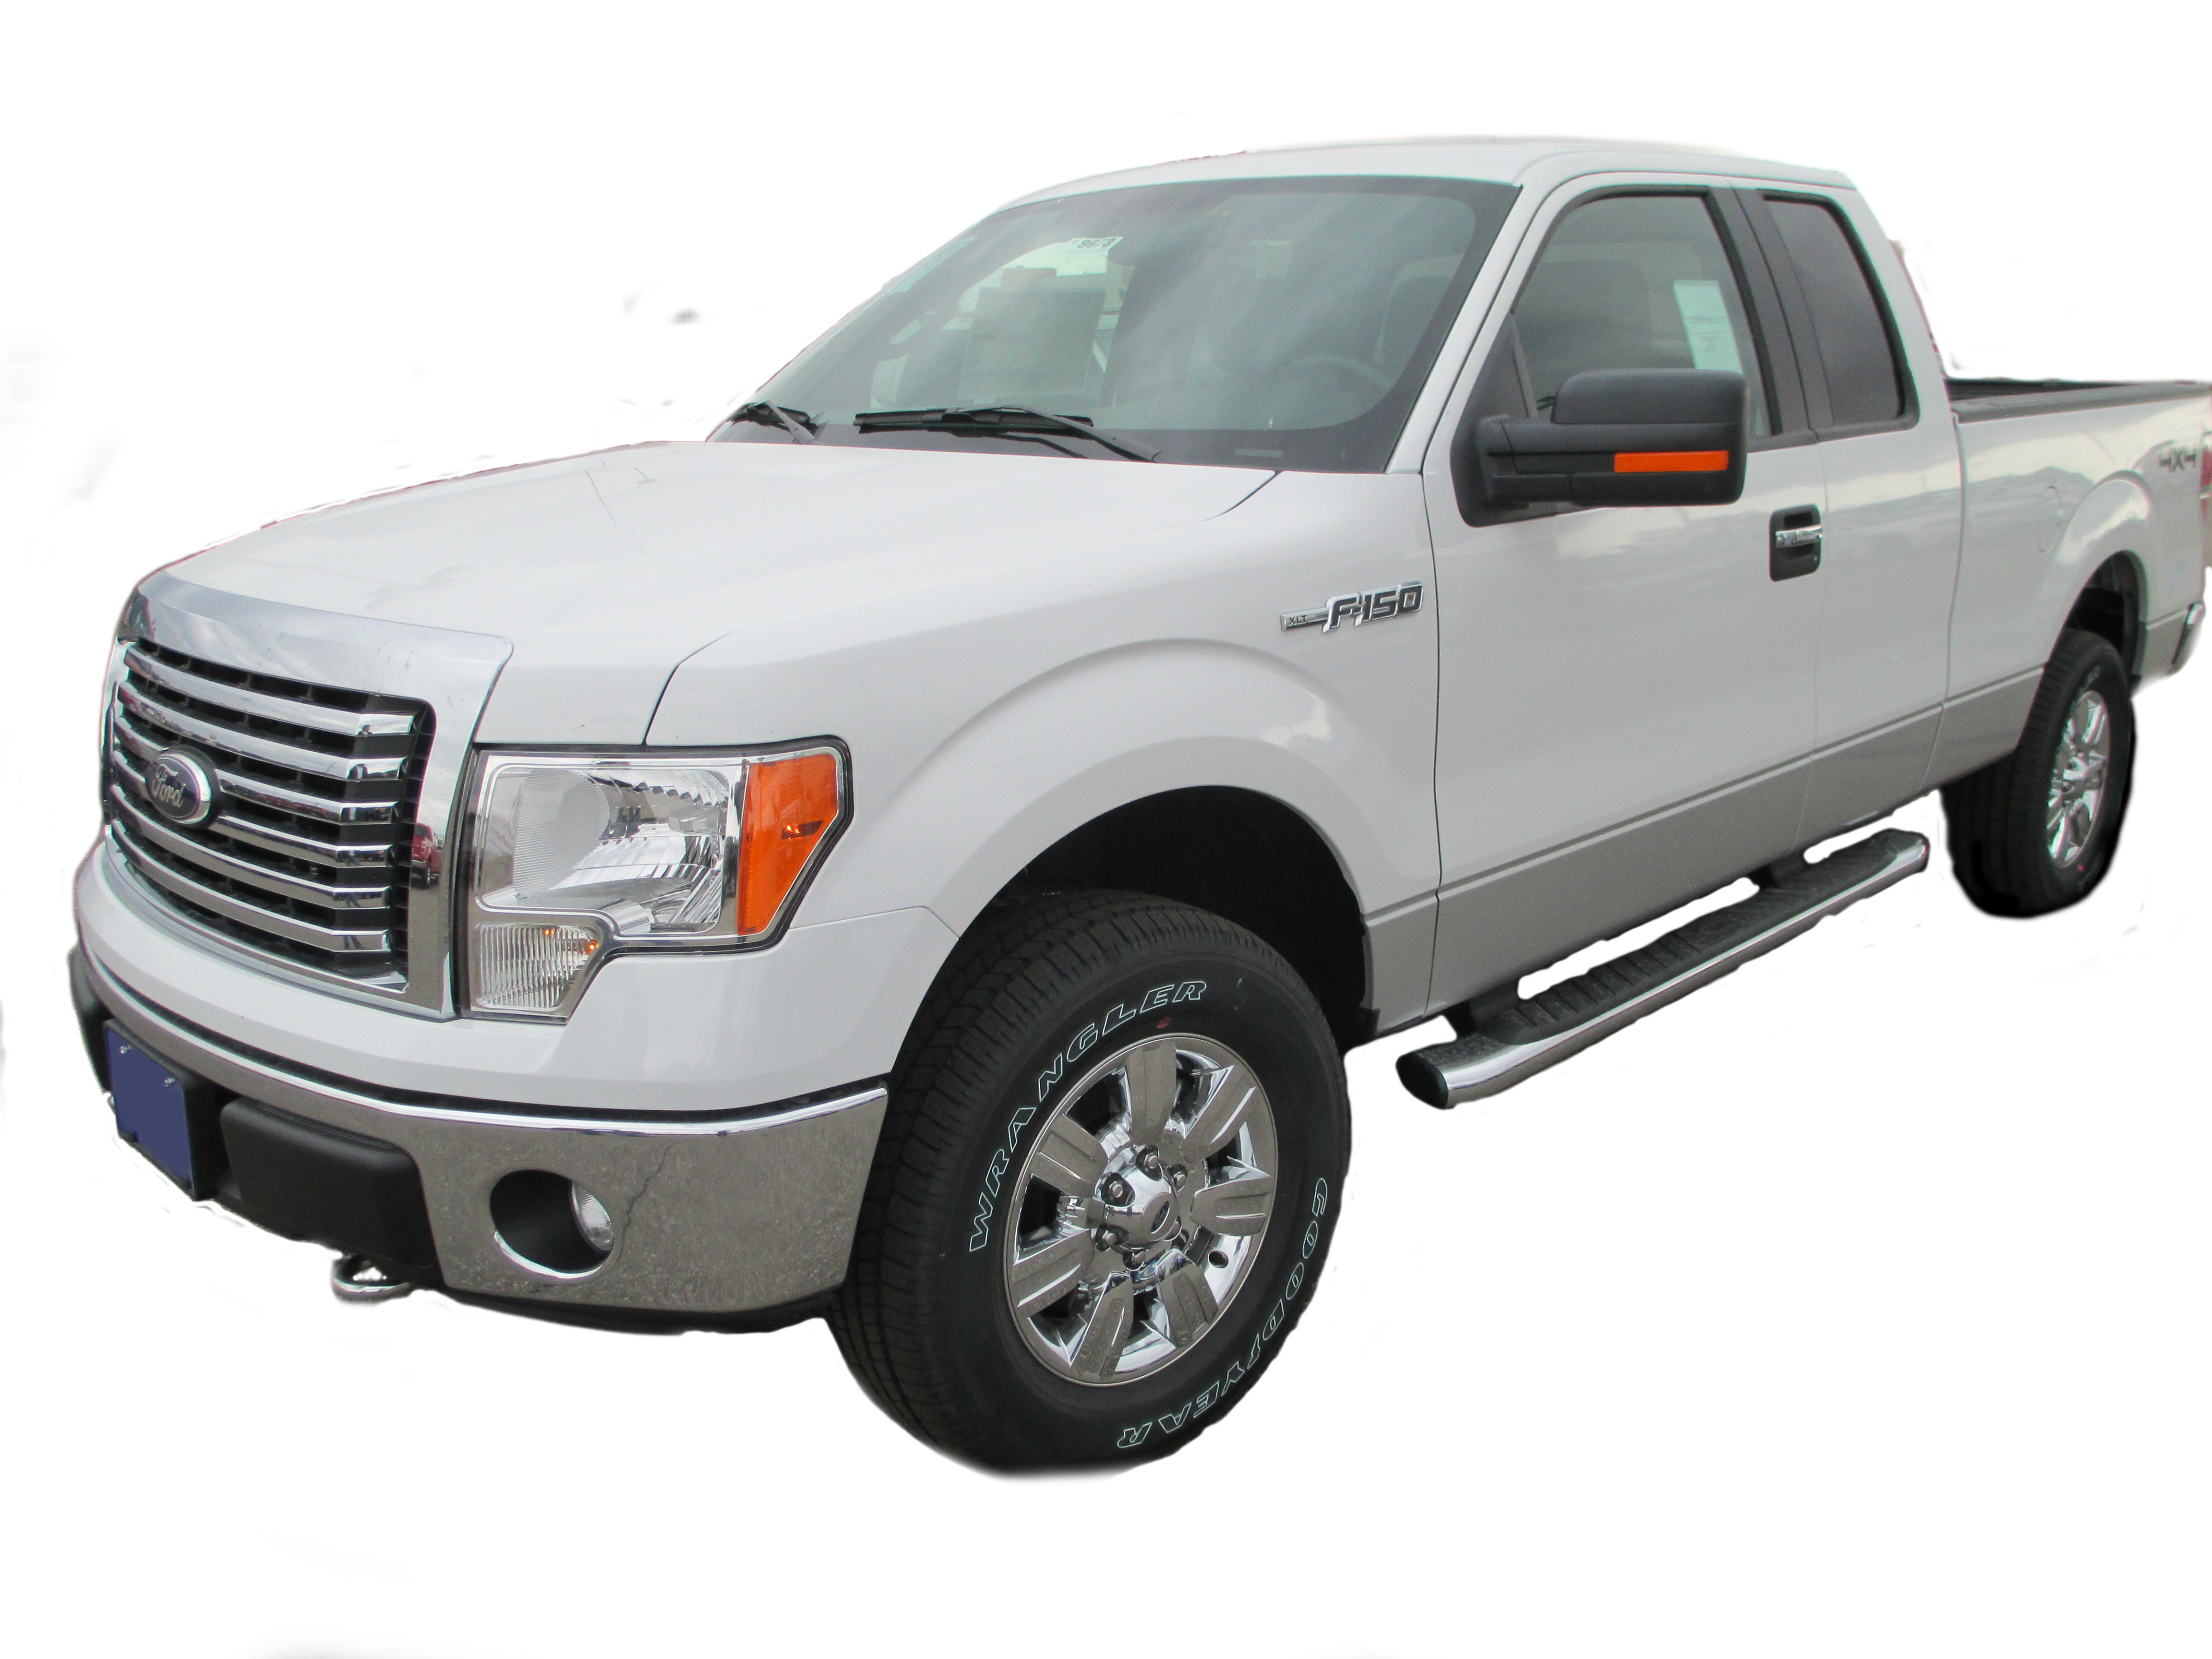 Ford Truck 2012 photo - 1